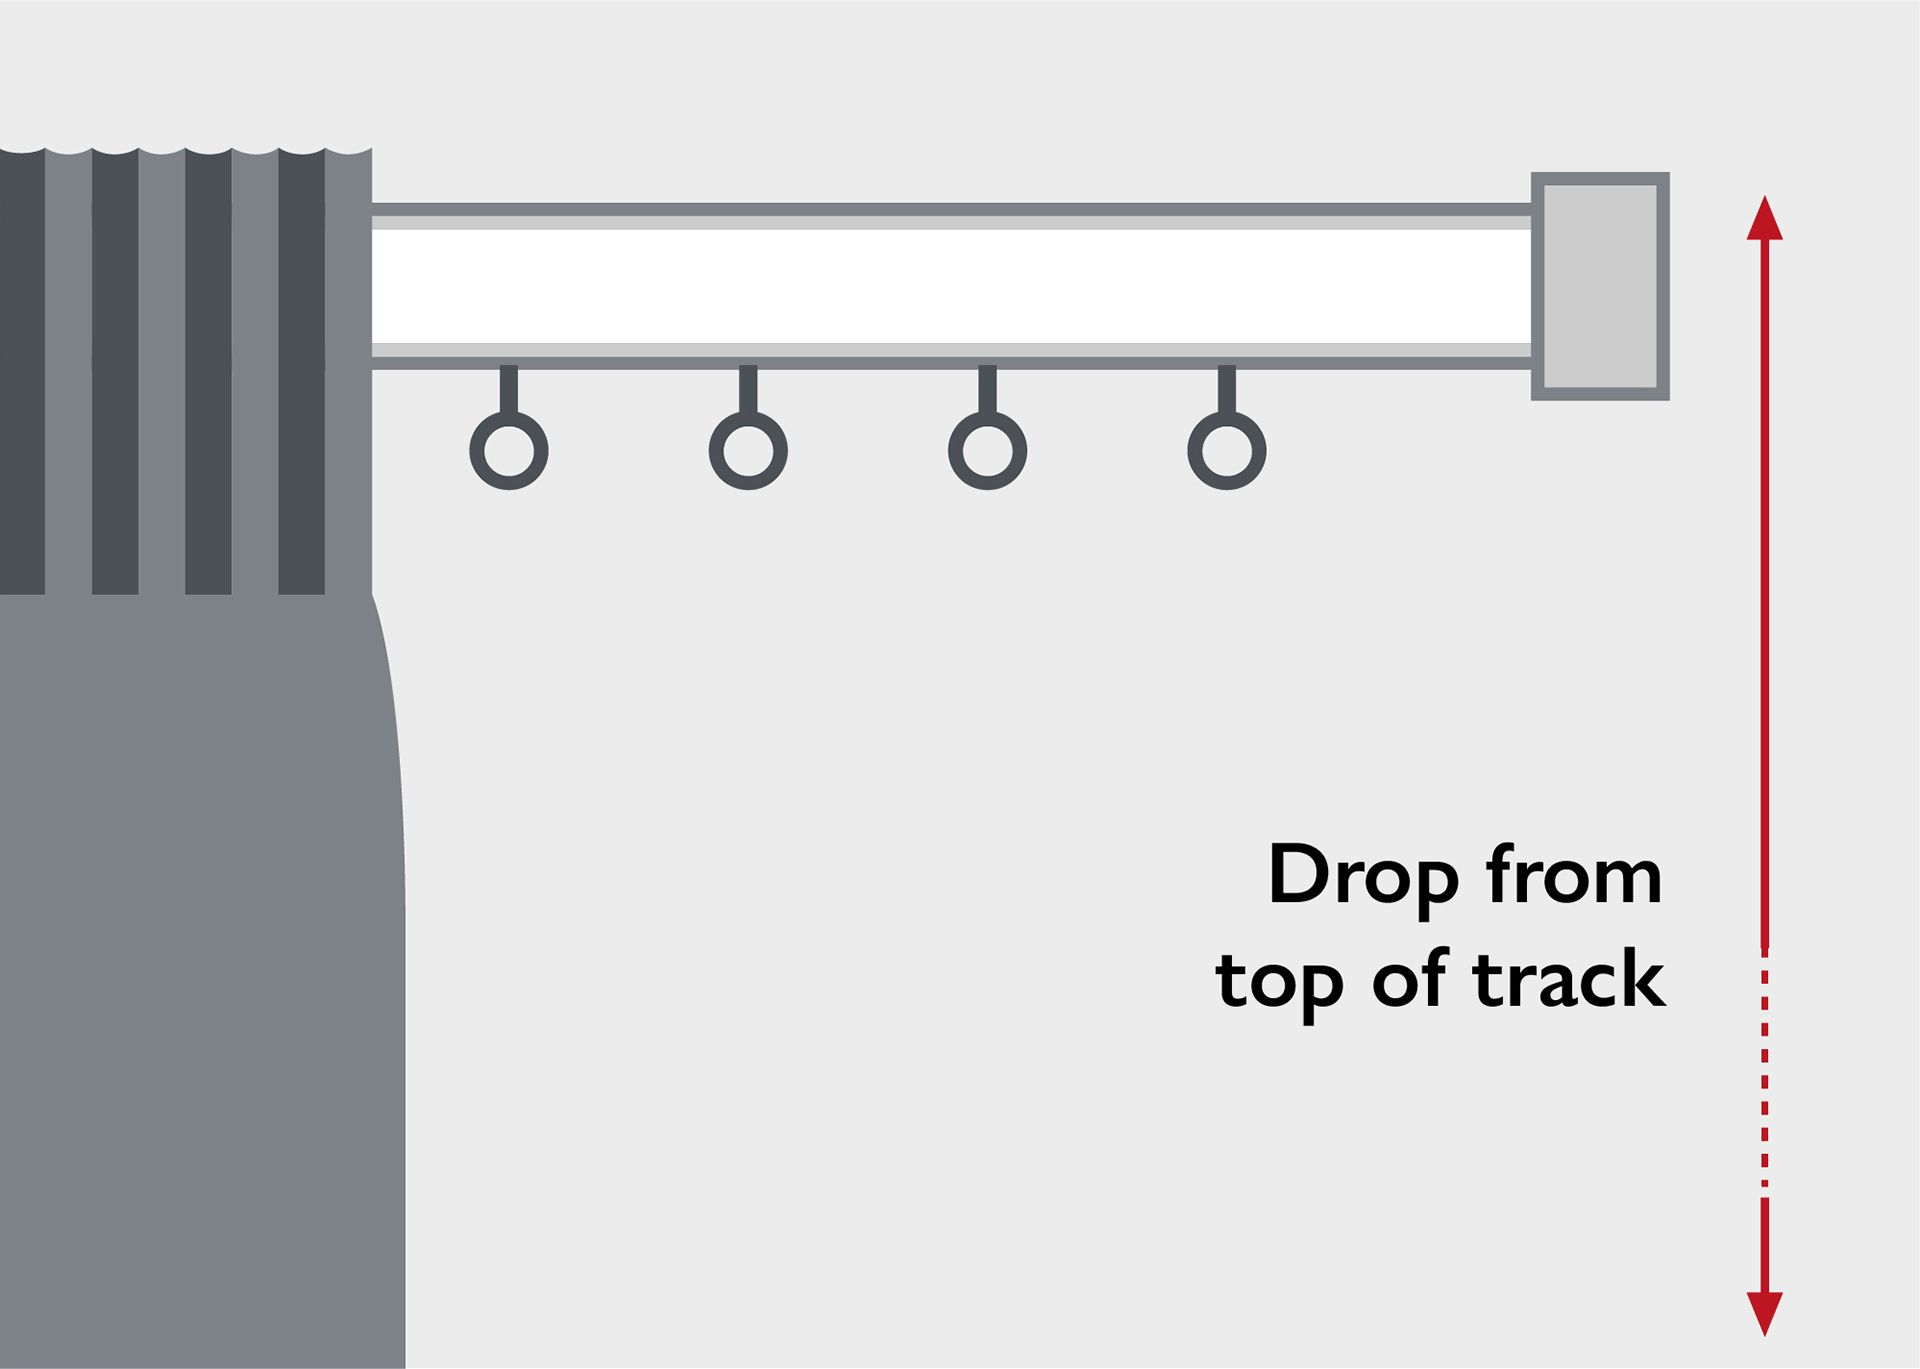 Measuring the drop for tracks